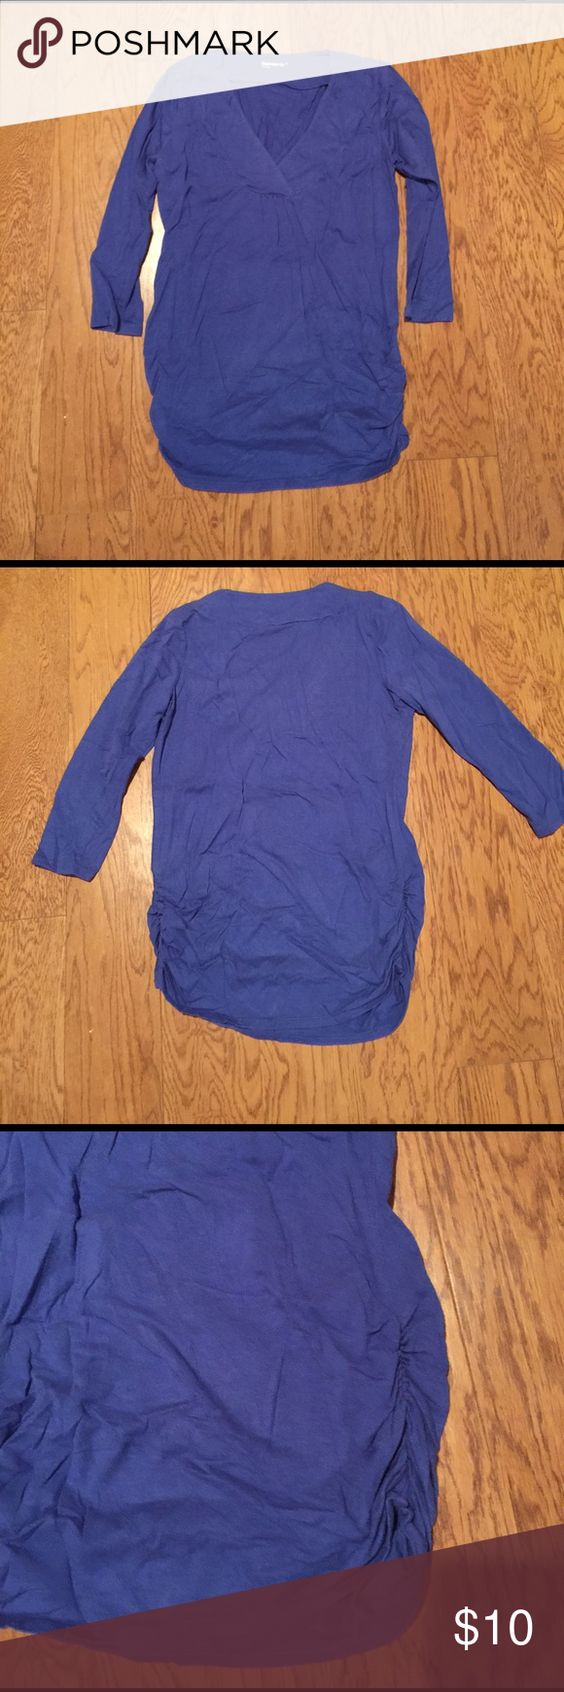 Gap Maternity V-Neck shirt Great condition. Size small. Gap Maternity V-Neck 3/4 sleeve shirt. Dark purple. Rouching on the sides. Very comfy and cute. GAP Maternity Tops